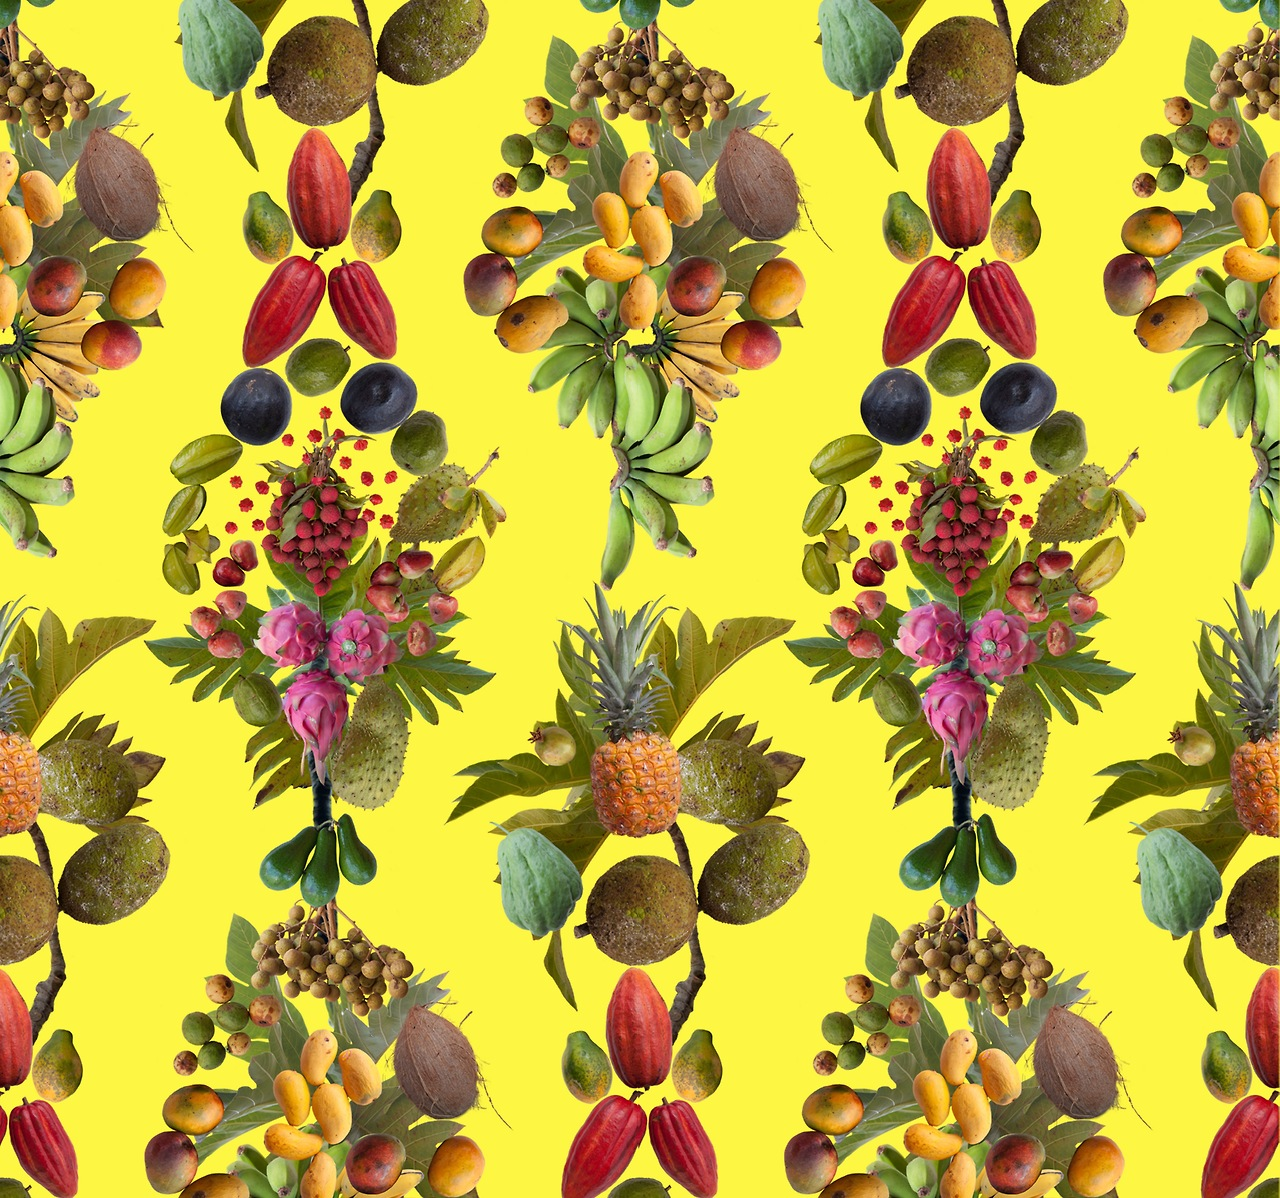 Public Fruit Wallpaper Honolulu, 2012 by    FALLEN FRUIT         Commissioned by  GREY AREA  and Smart Car for the launch   of the all-new Electric Drive